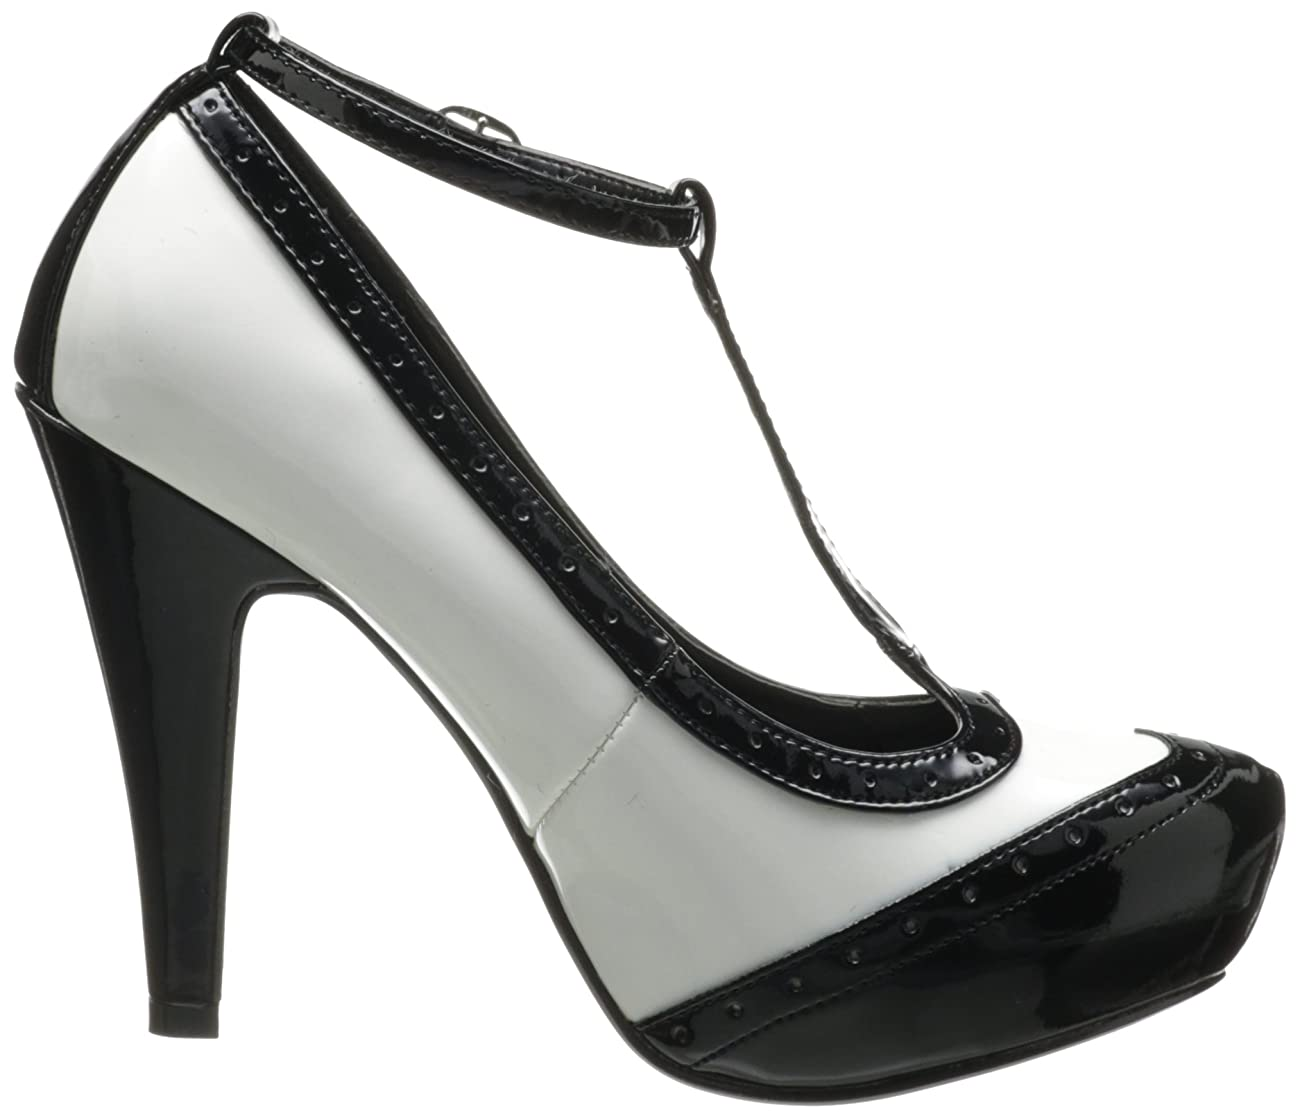 Pleaser Women's Bettie-22 Pump 5